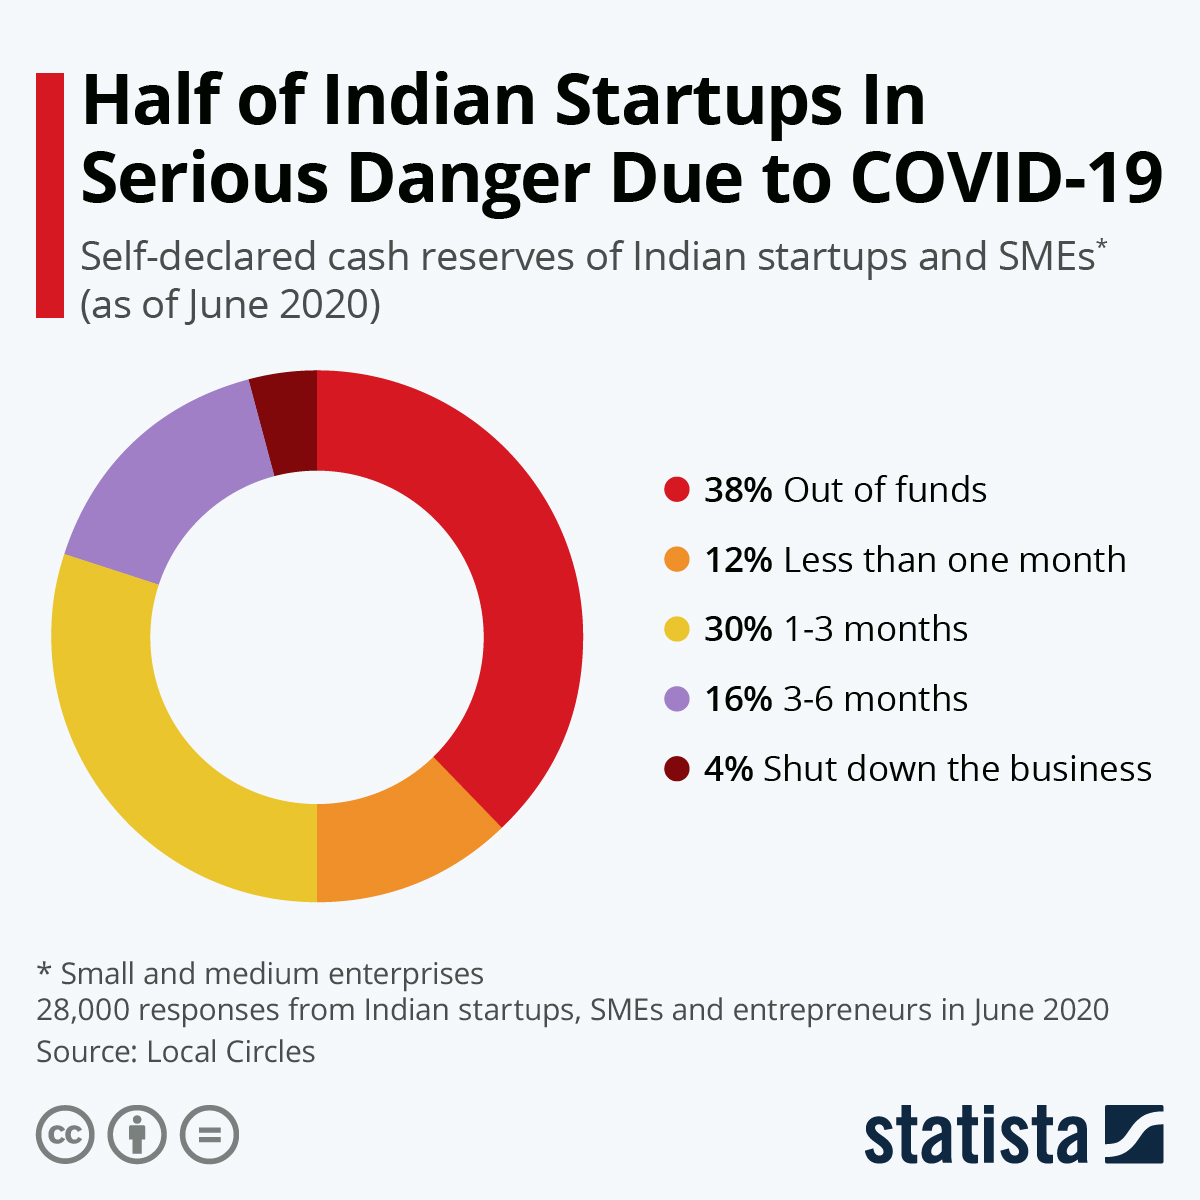 Infographic: Half of Indian Startups in Serious Danger Due to COVID-19 | Statista